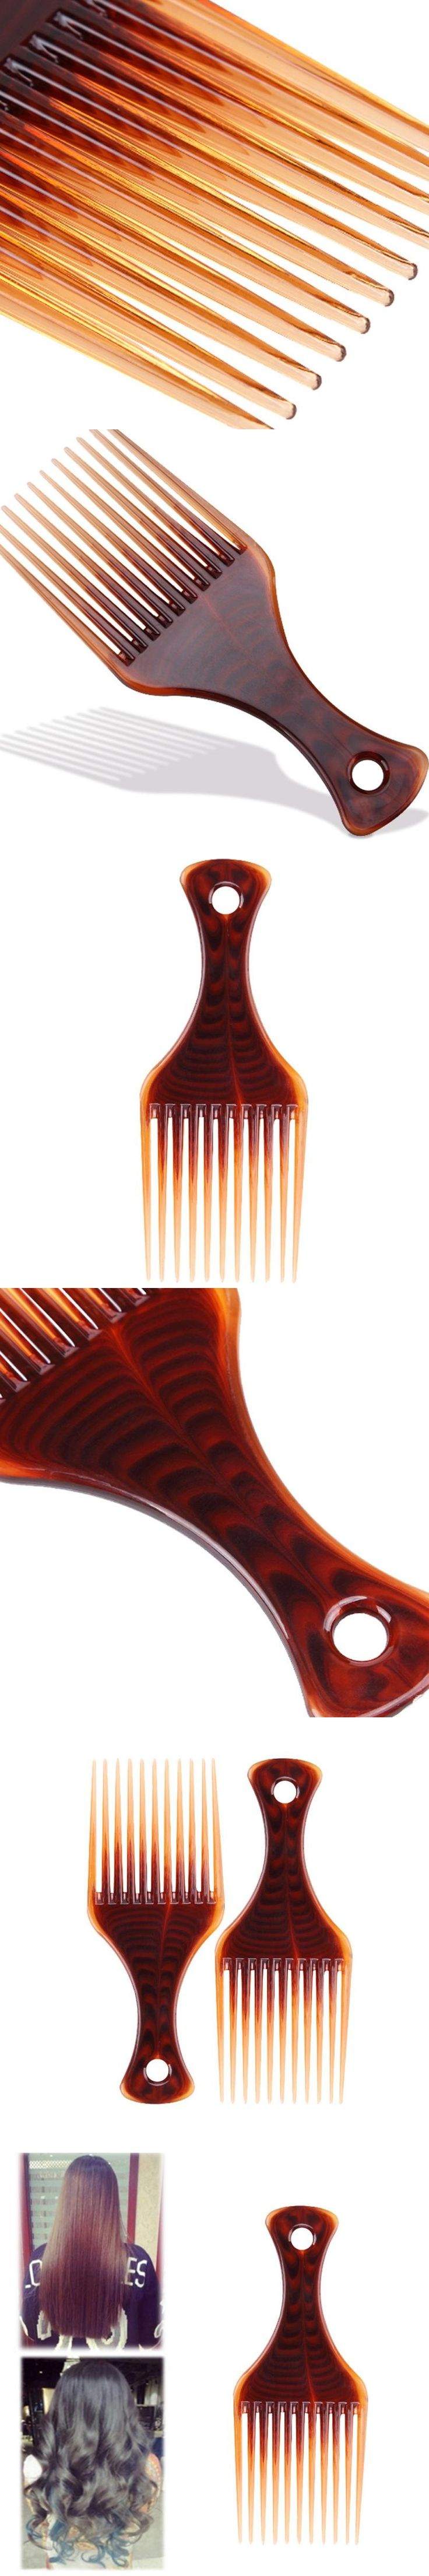 1 PC Afro Comb Curly Hair Brush Salon Hairdressing Styling Long Tooth Styling Pick #Y